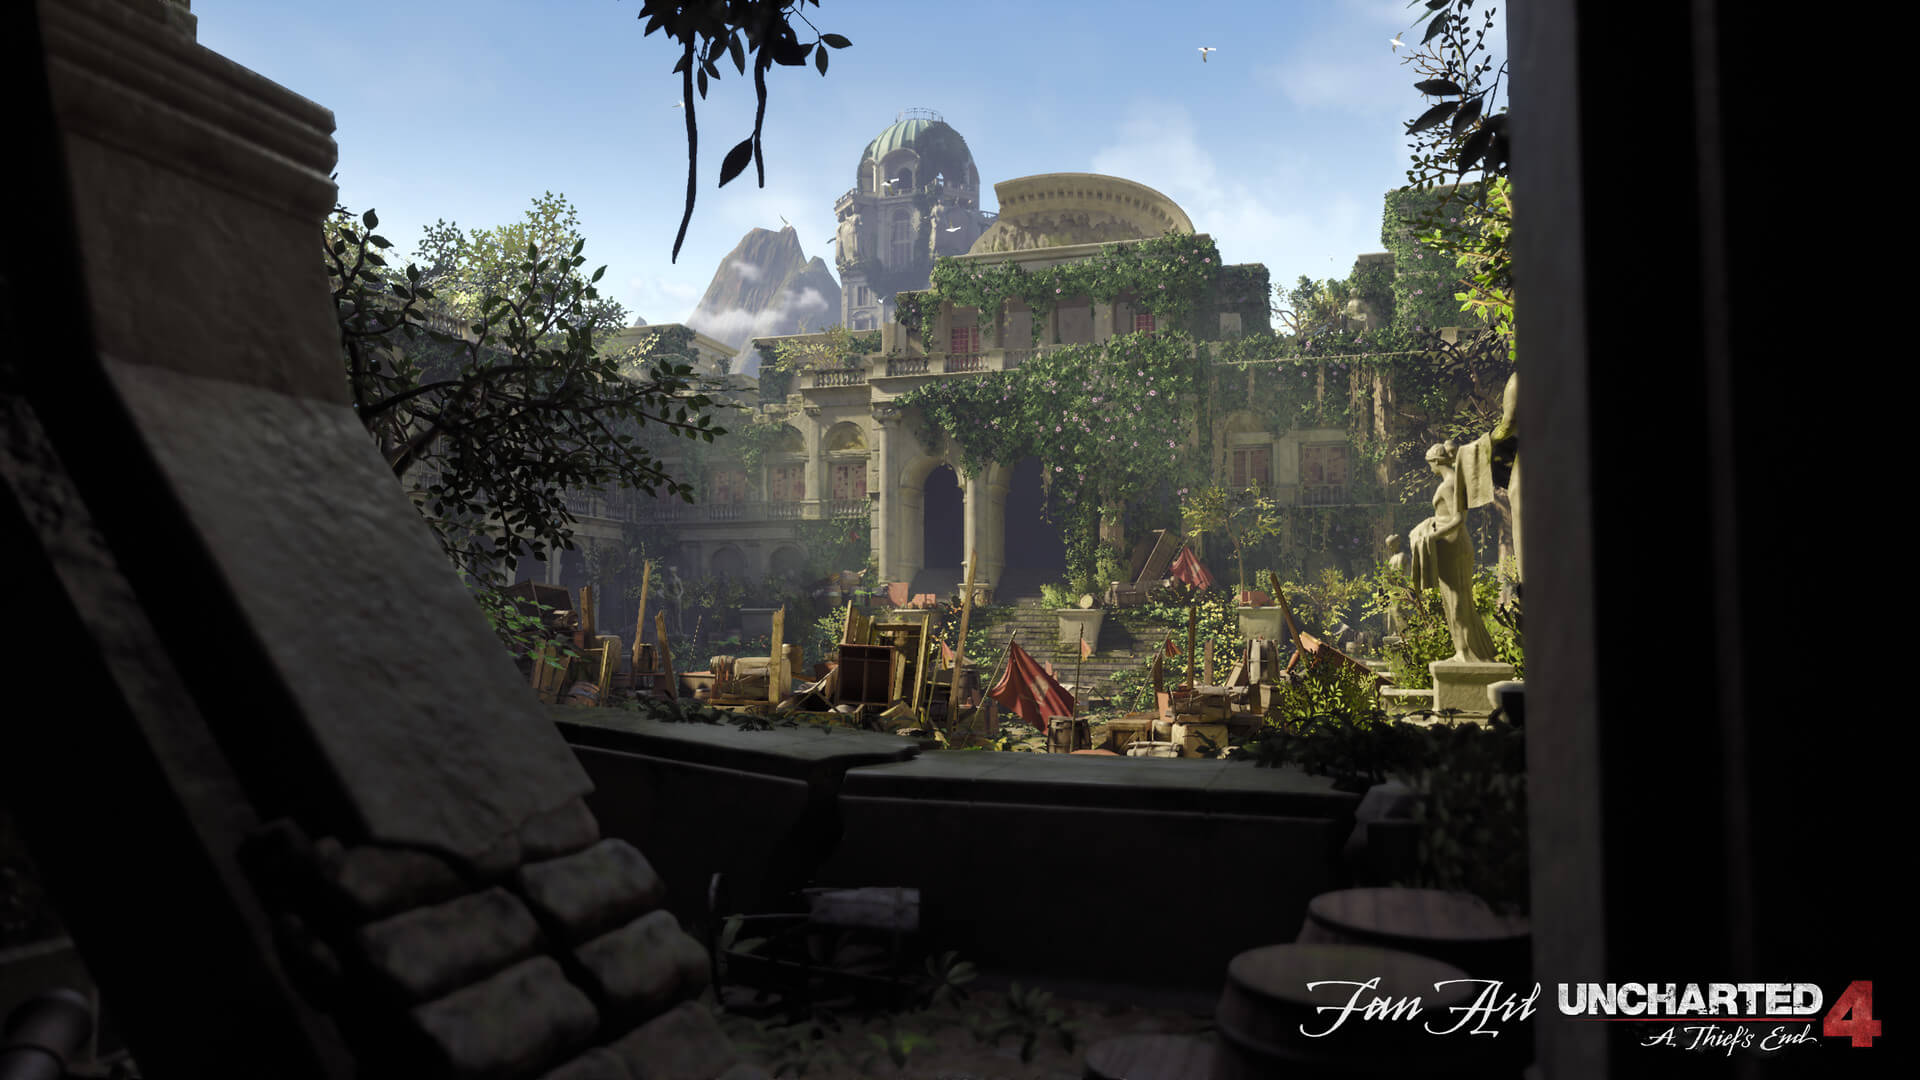 Someone has recreated Uncharted 4's Treasury Courtyard in